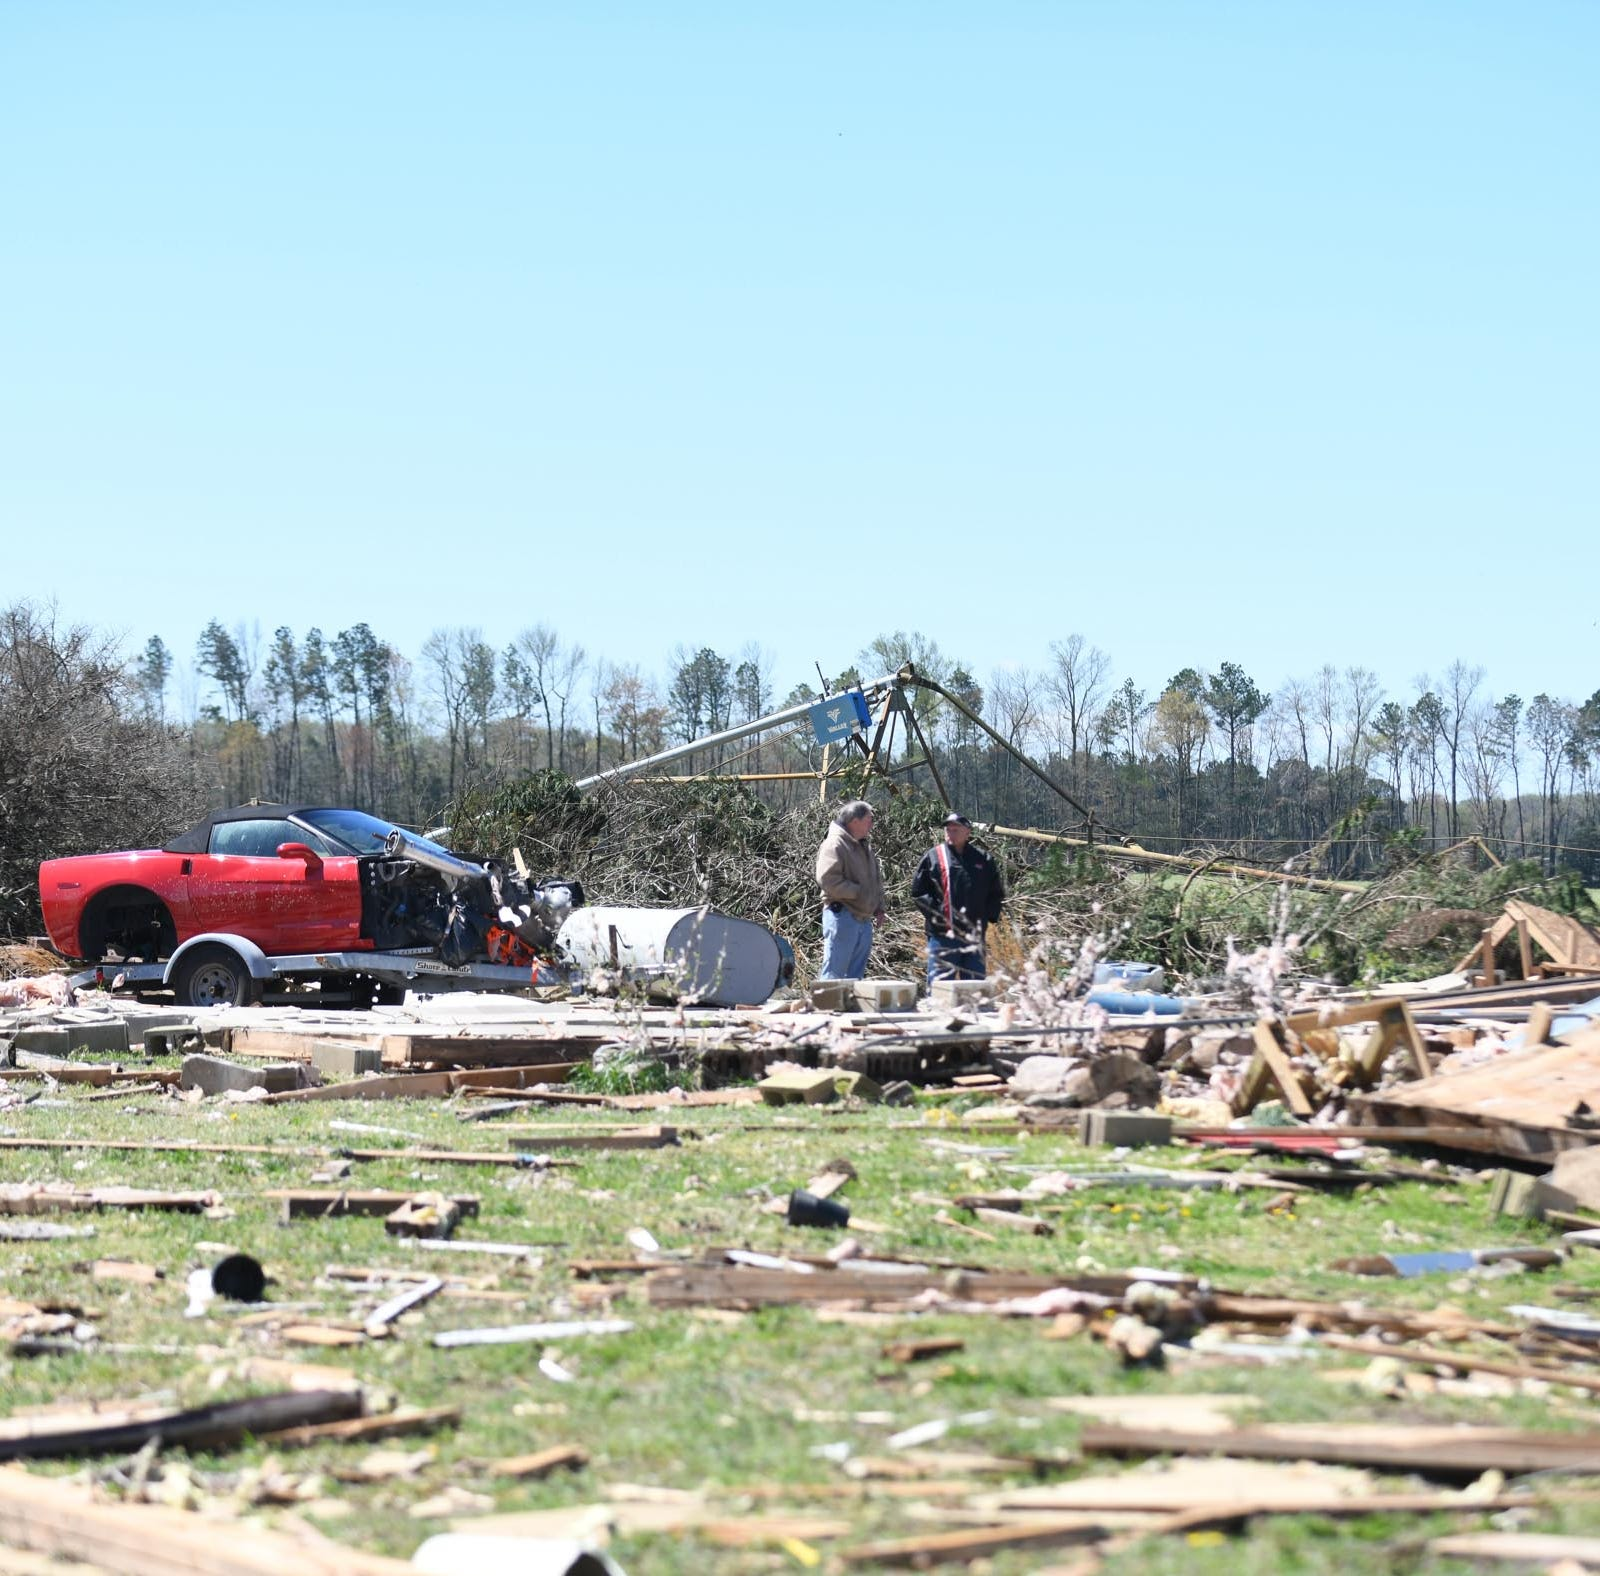 More severe weather on way as 2nd tornado confirmed